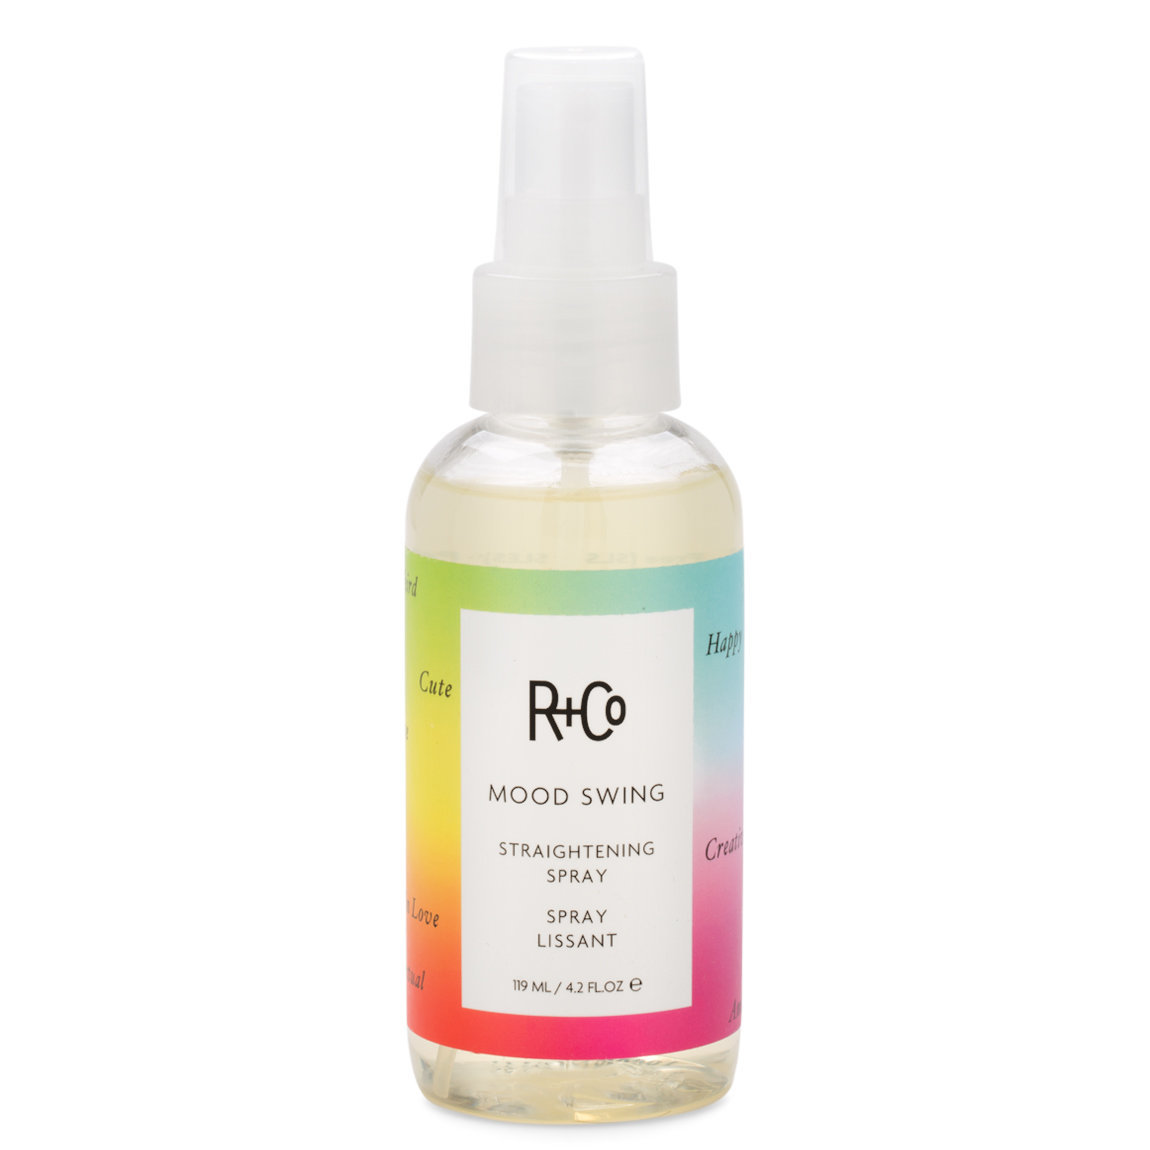 R+Co Mood Swing Straightening Spray product smear.